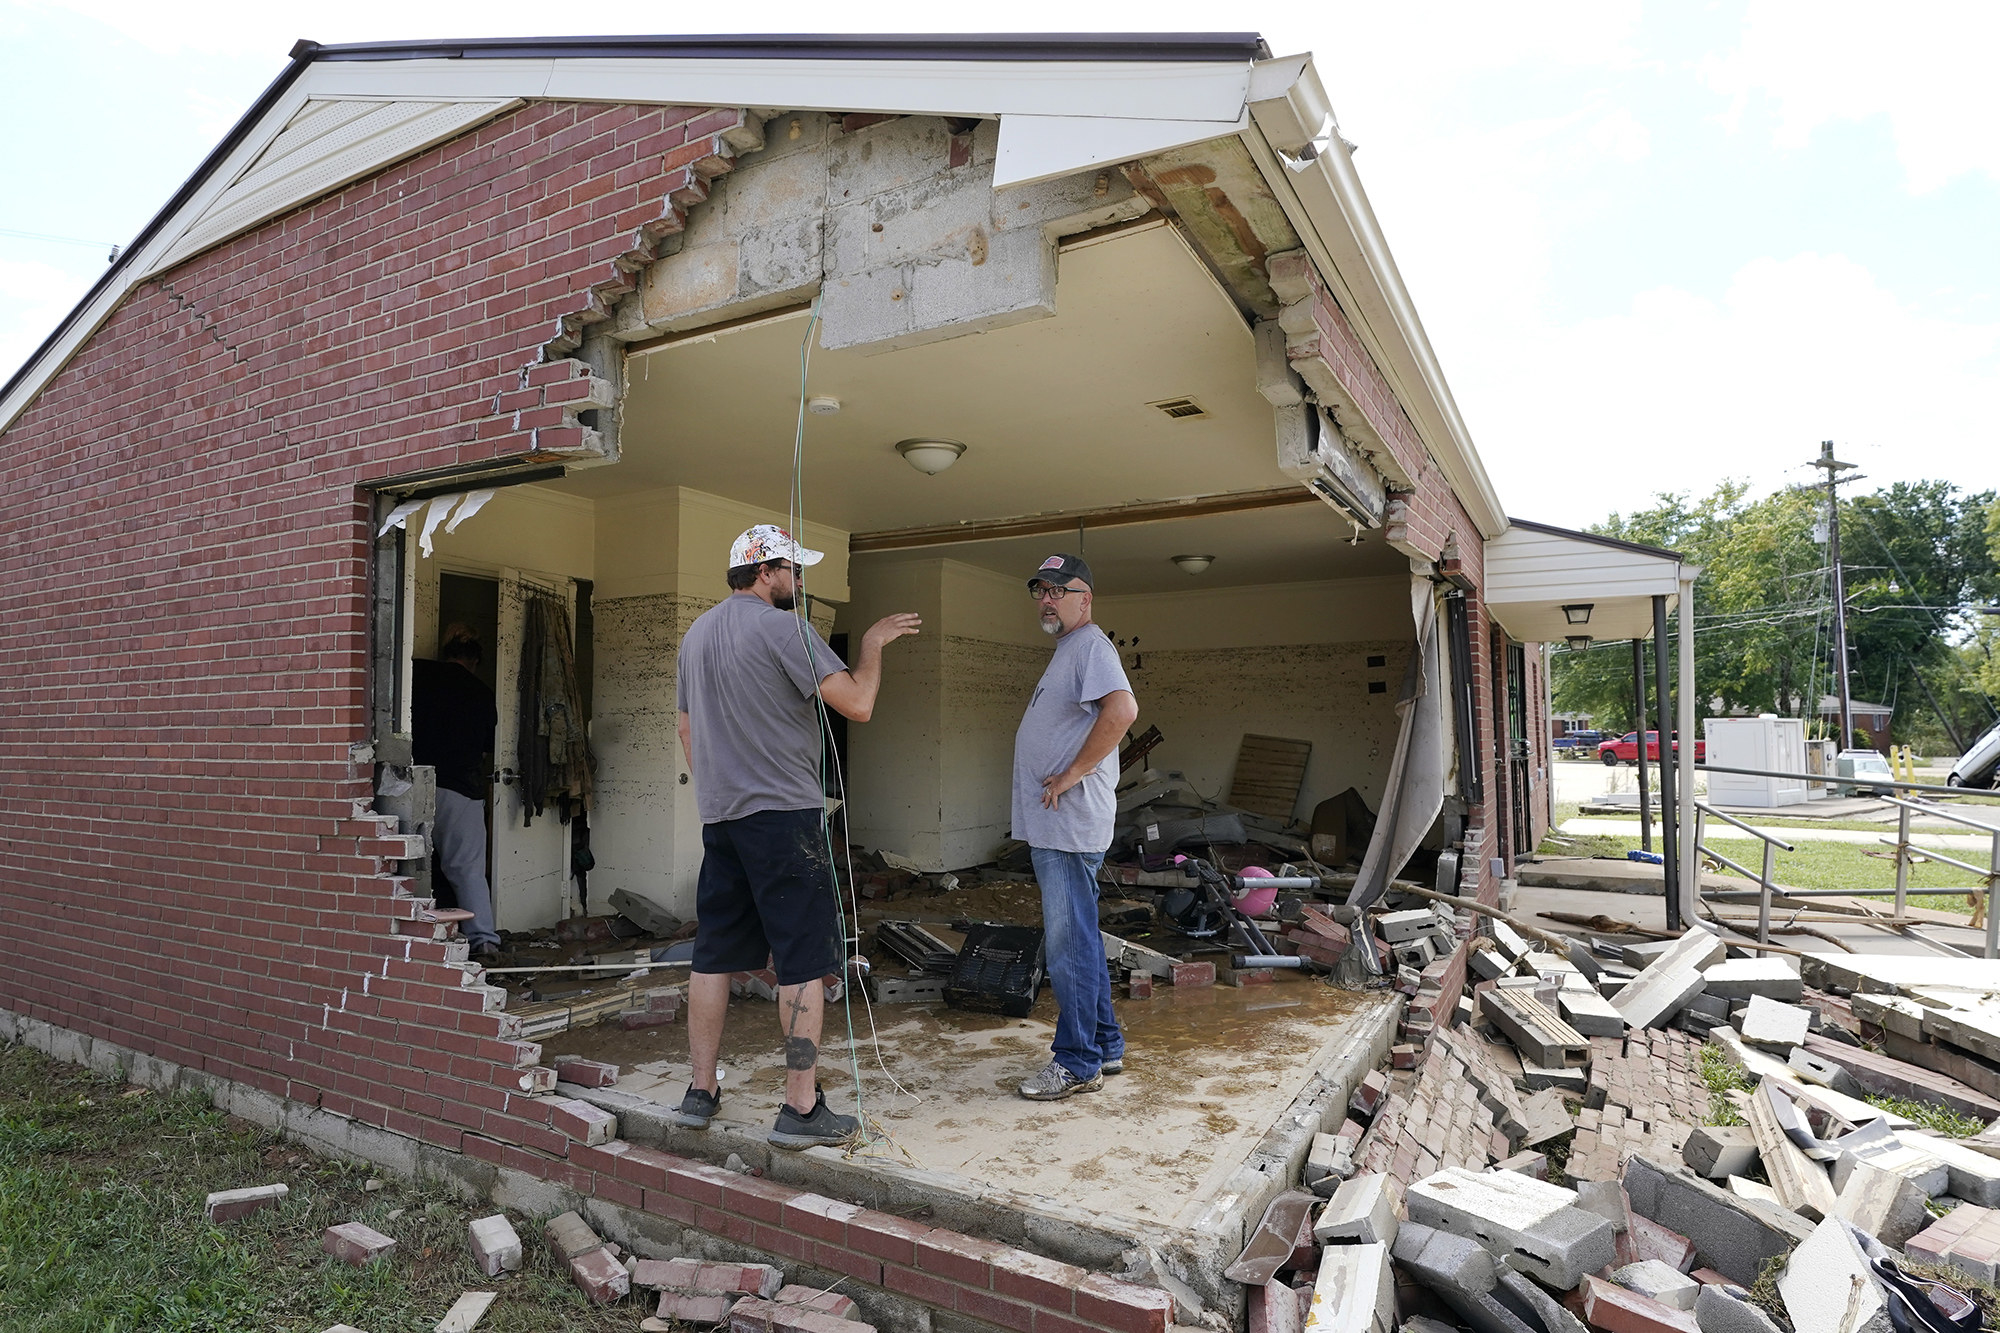 Two men stand inside a brick house with two perpendicular walls missing, bricks and concrete blocks scattered on the ground